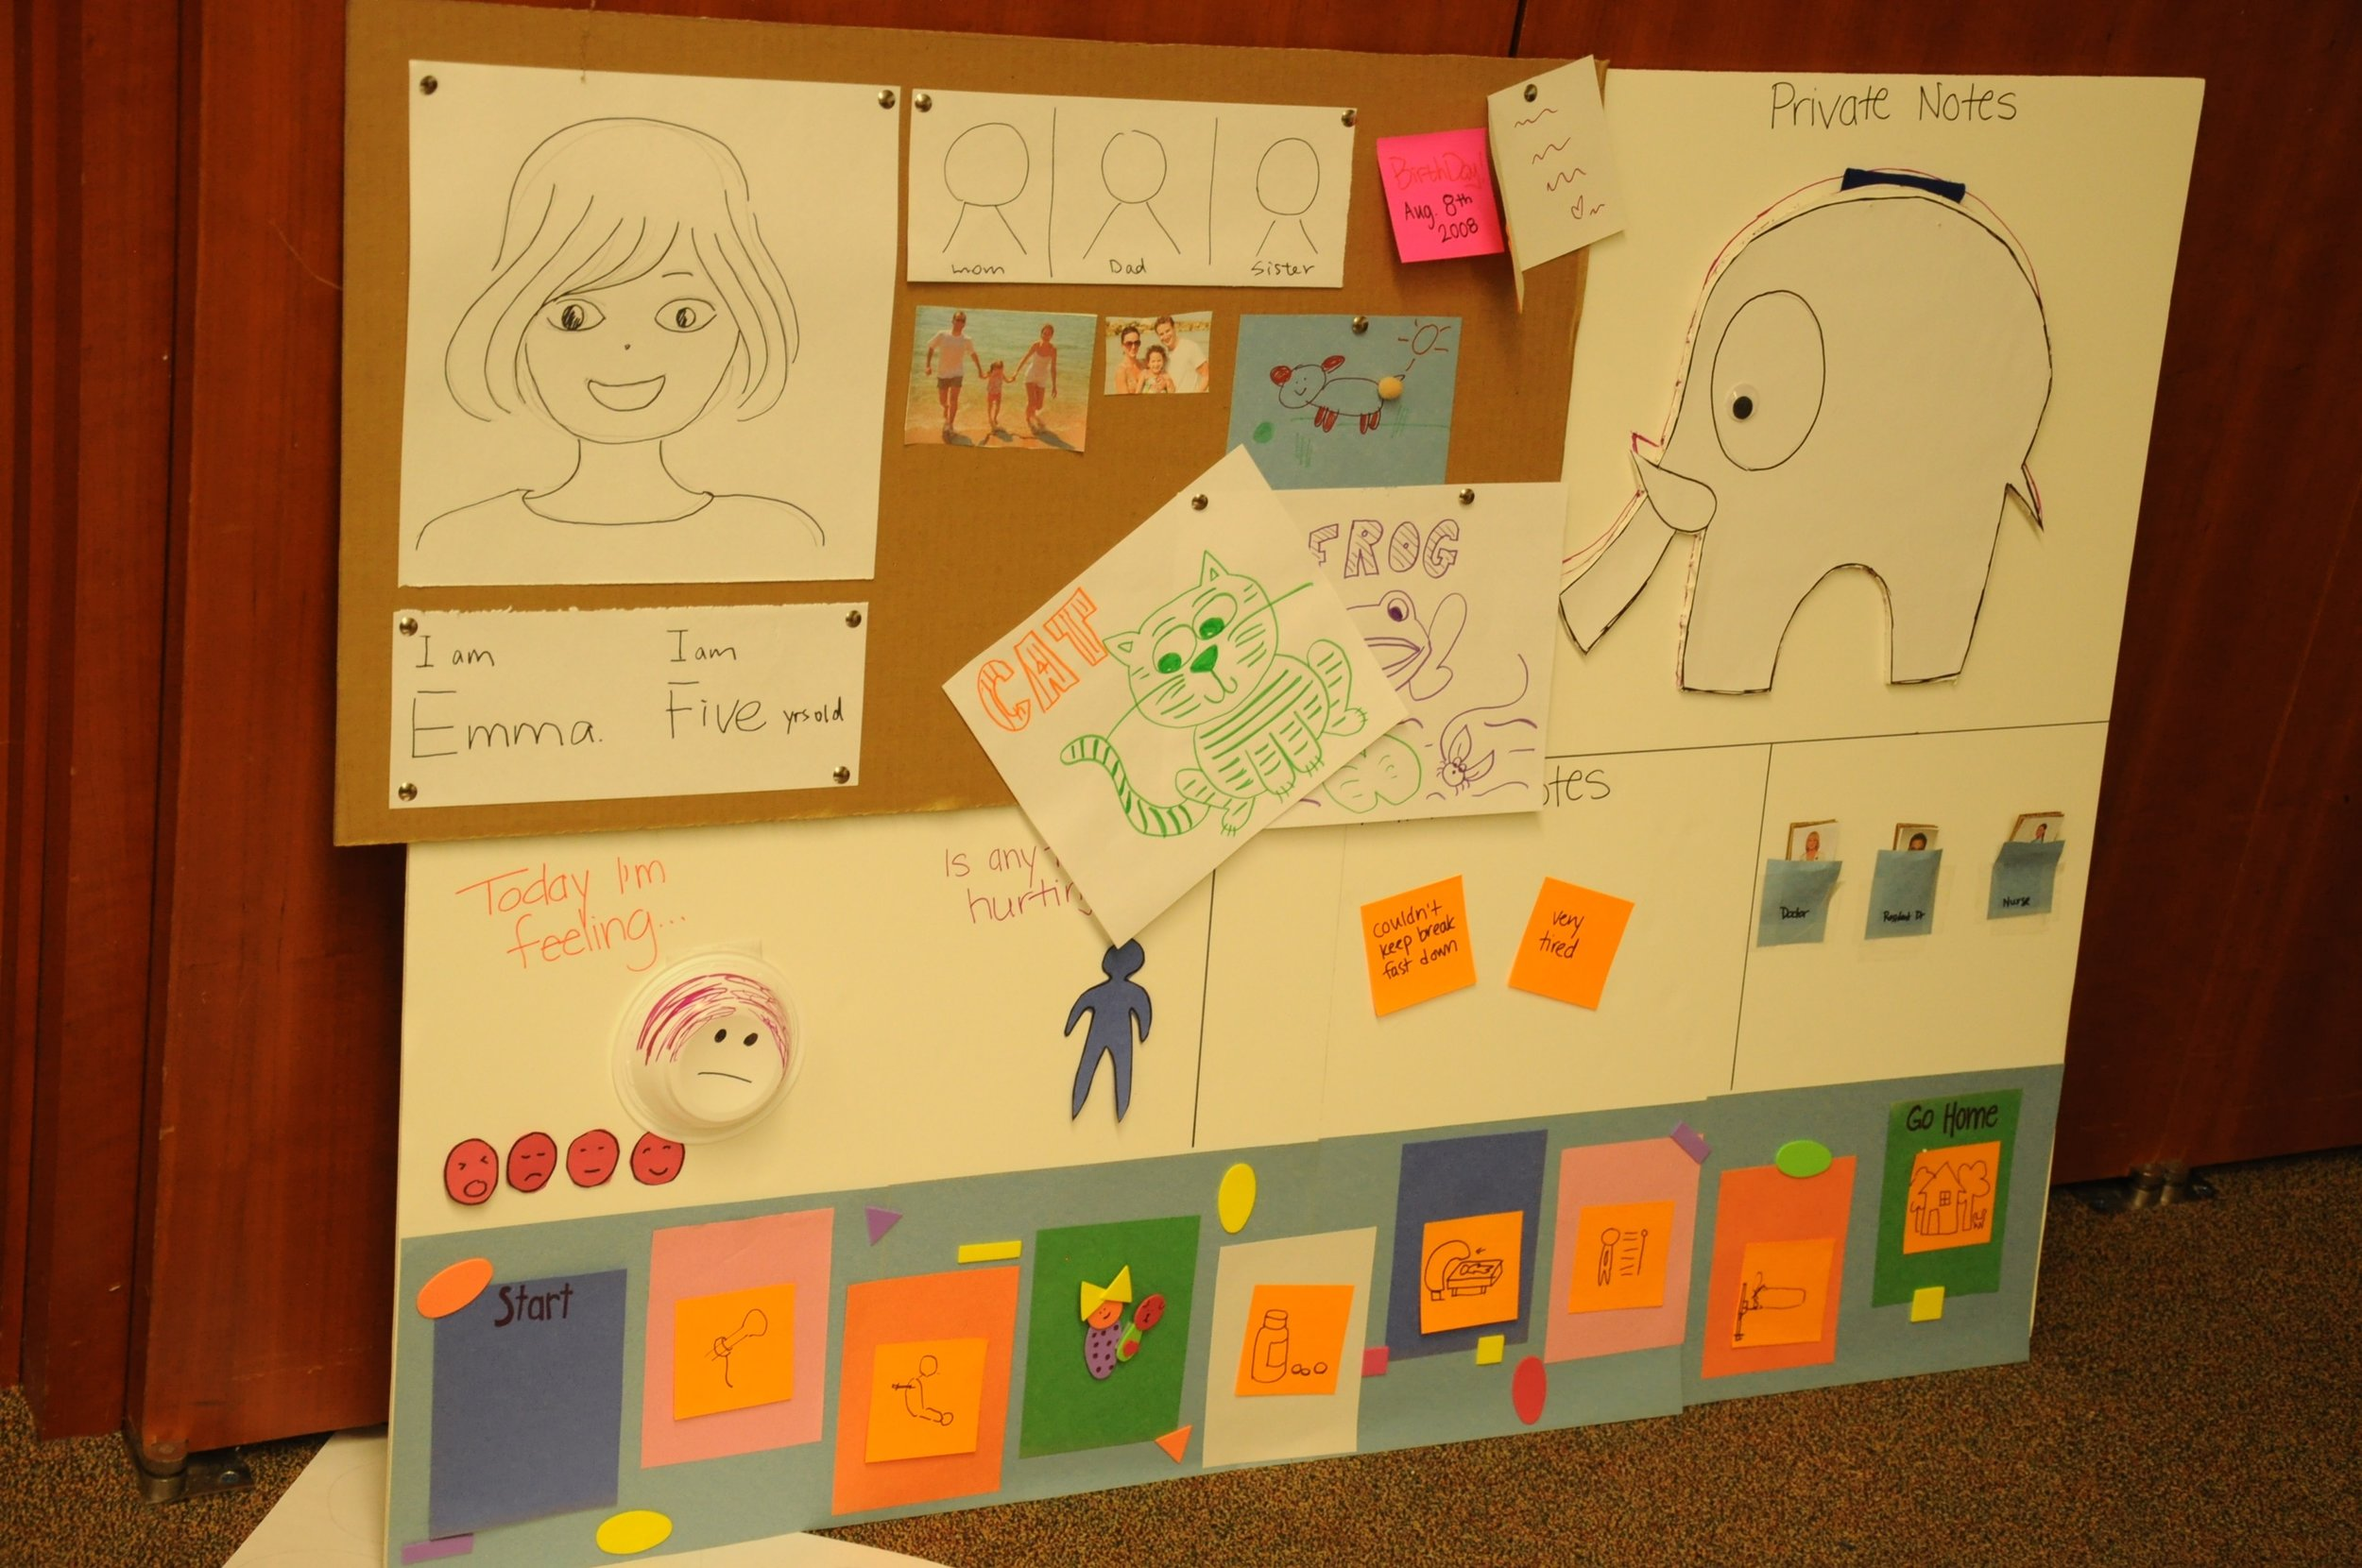 2013 DESIGN Challenge - Northwestern - Designing For a Child's Experience of Clinical Rounds